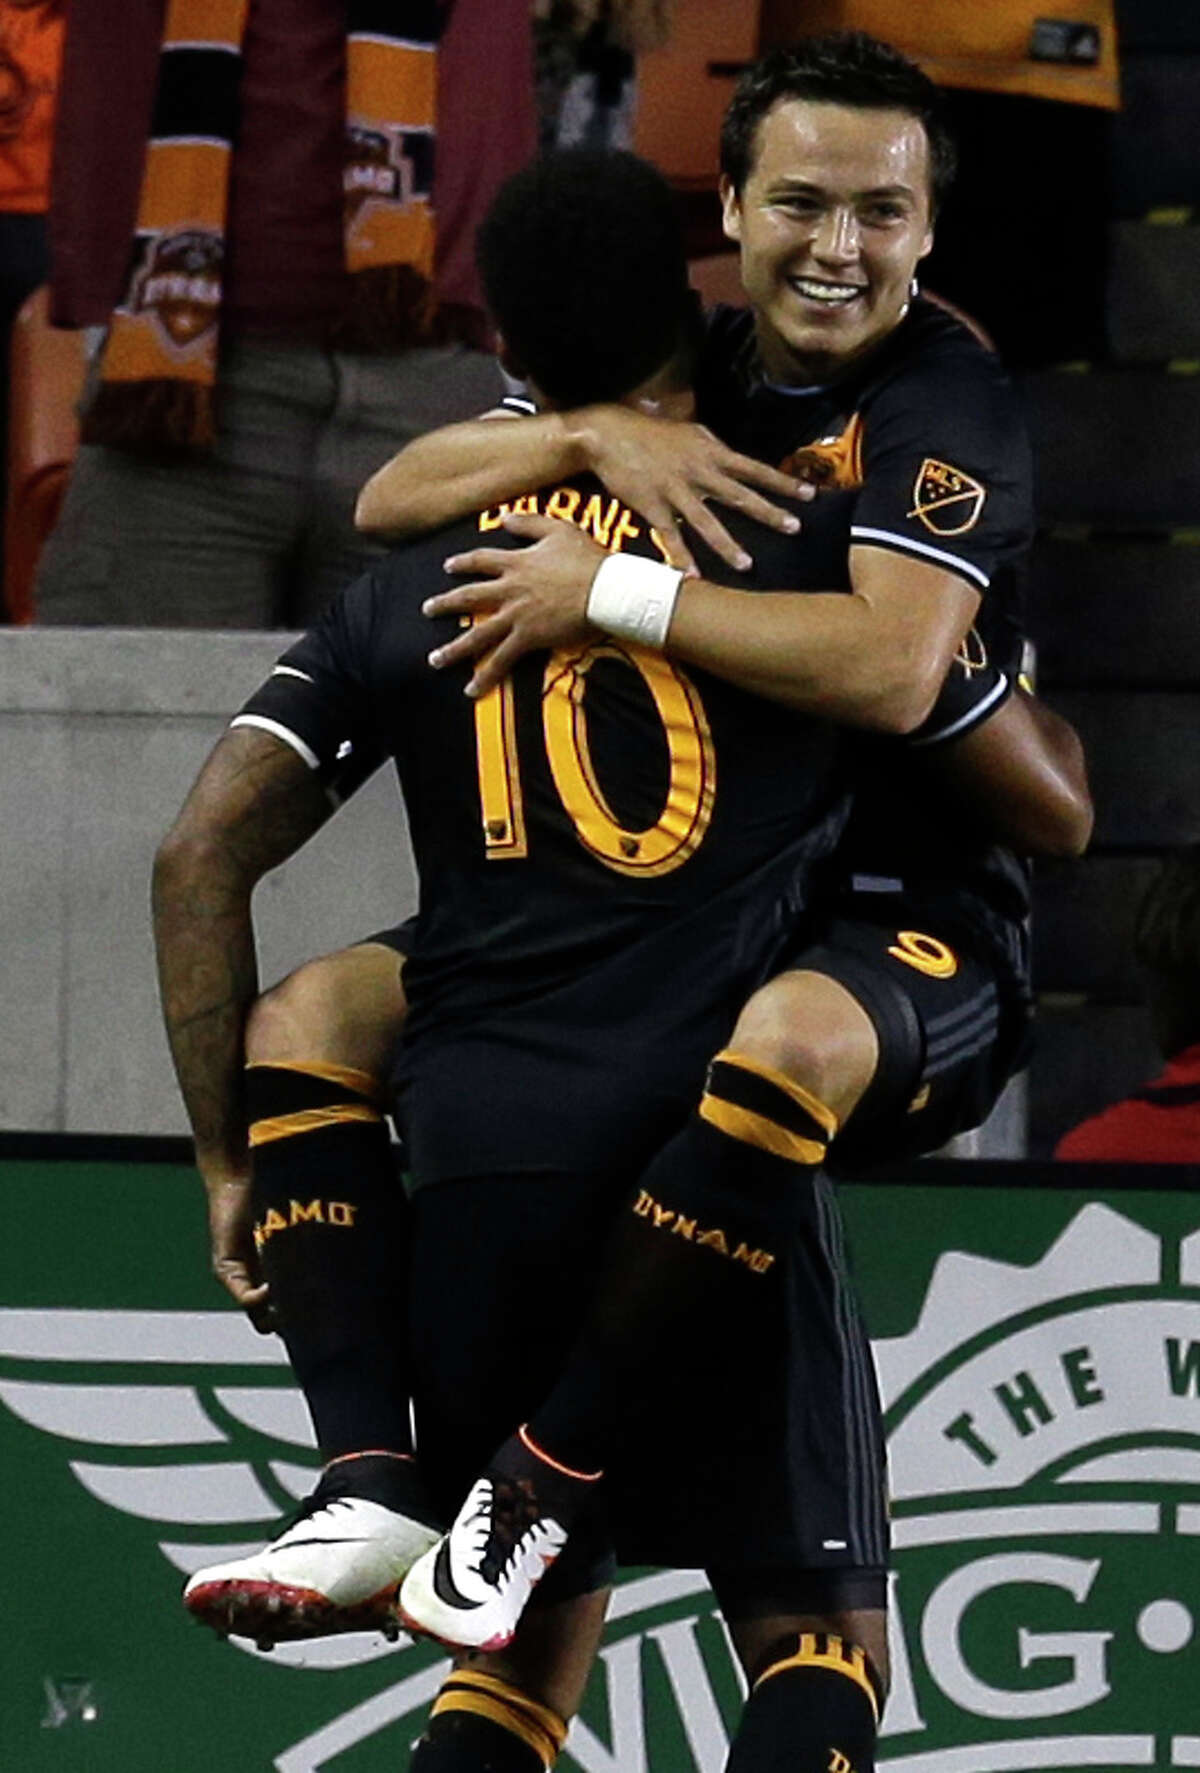 In his first stint in the MLS, Erick Torres, right, scored 22 goals in 44 appearances with Chivas USA in 2013 and '14 before signing with the Dynamo.